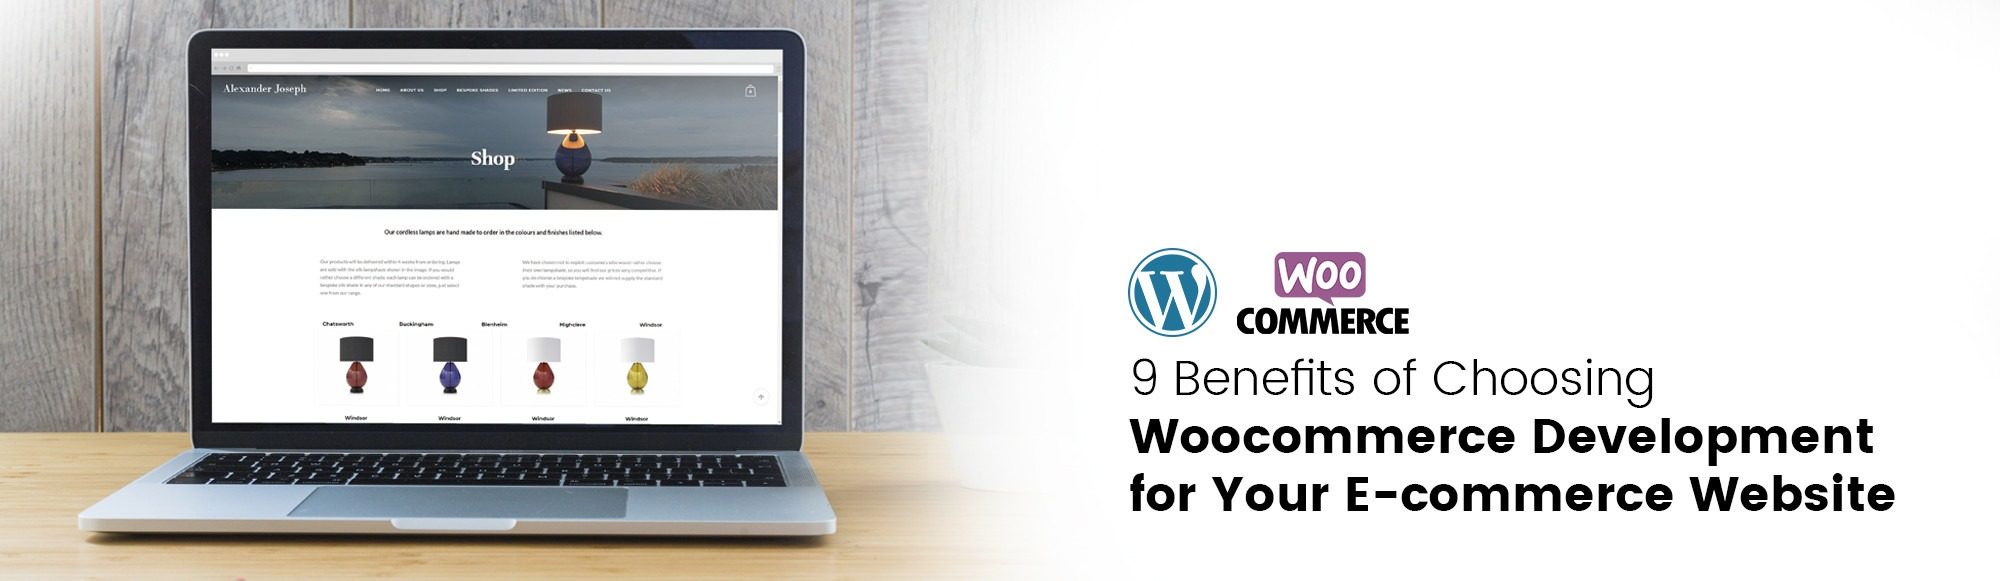 9 Benefits of Choosing Woocommerce Development for Your E-commerce Website